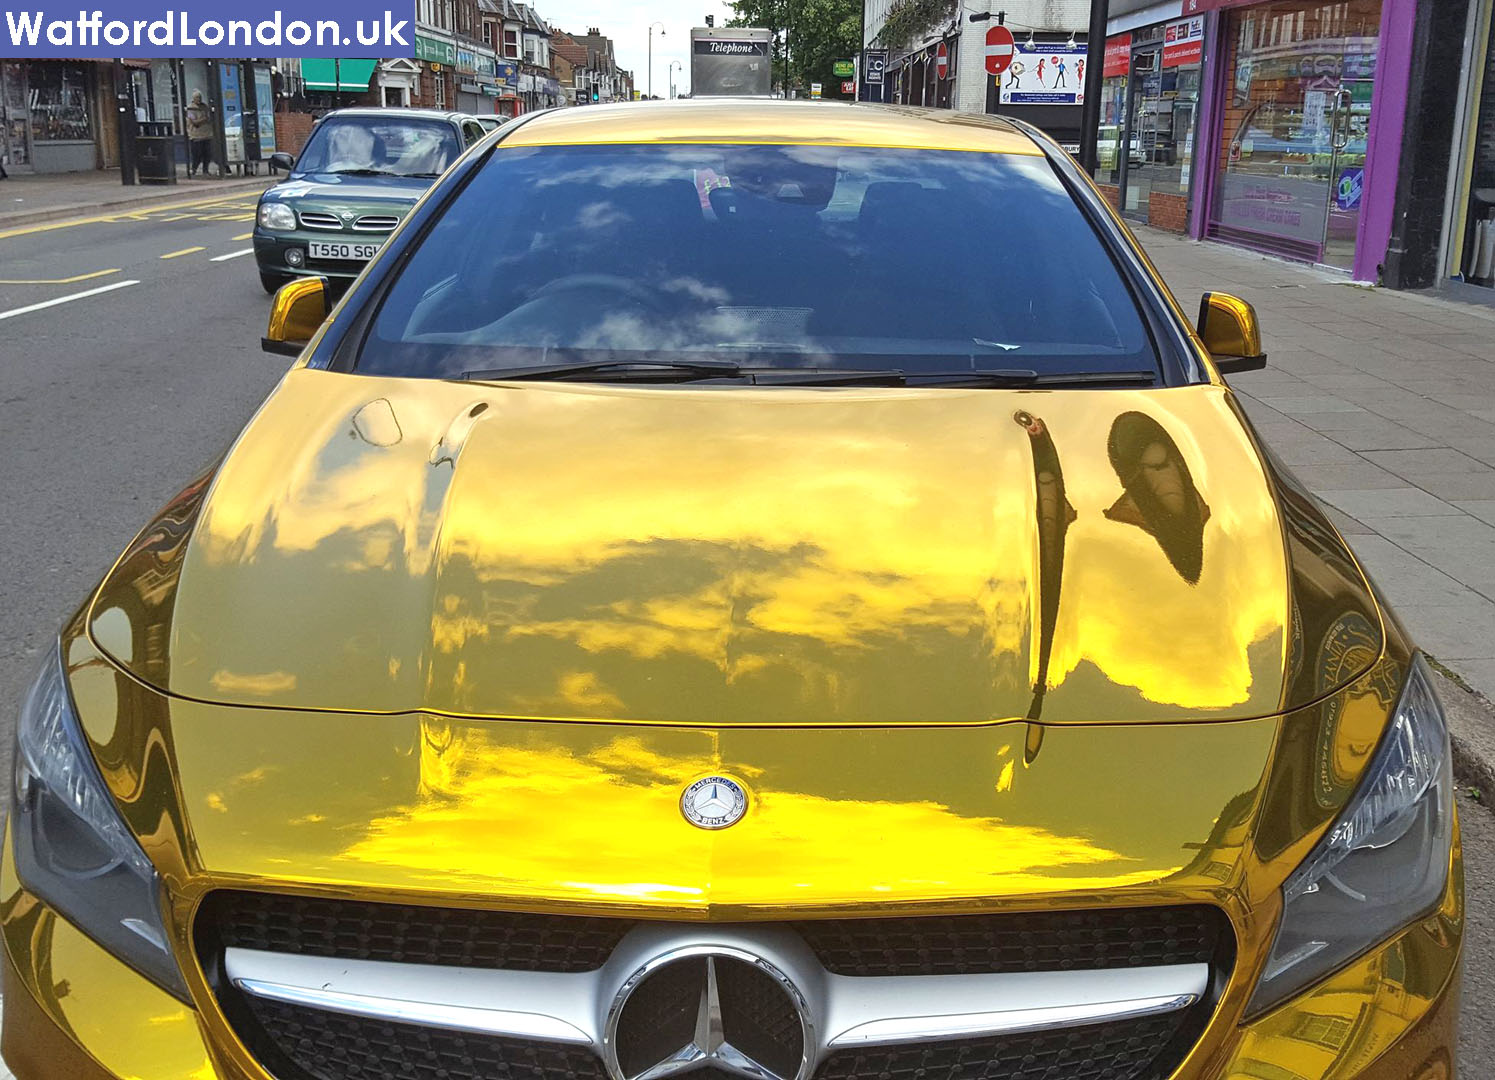 Chrome Gold Mercedes Benz Car Spotted in Watford